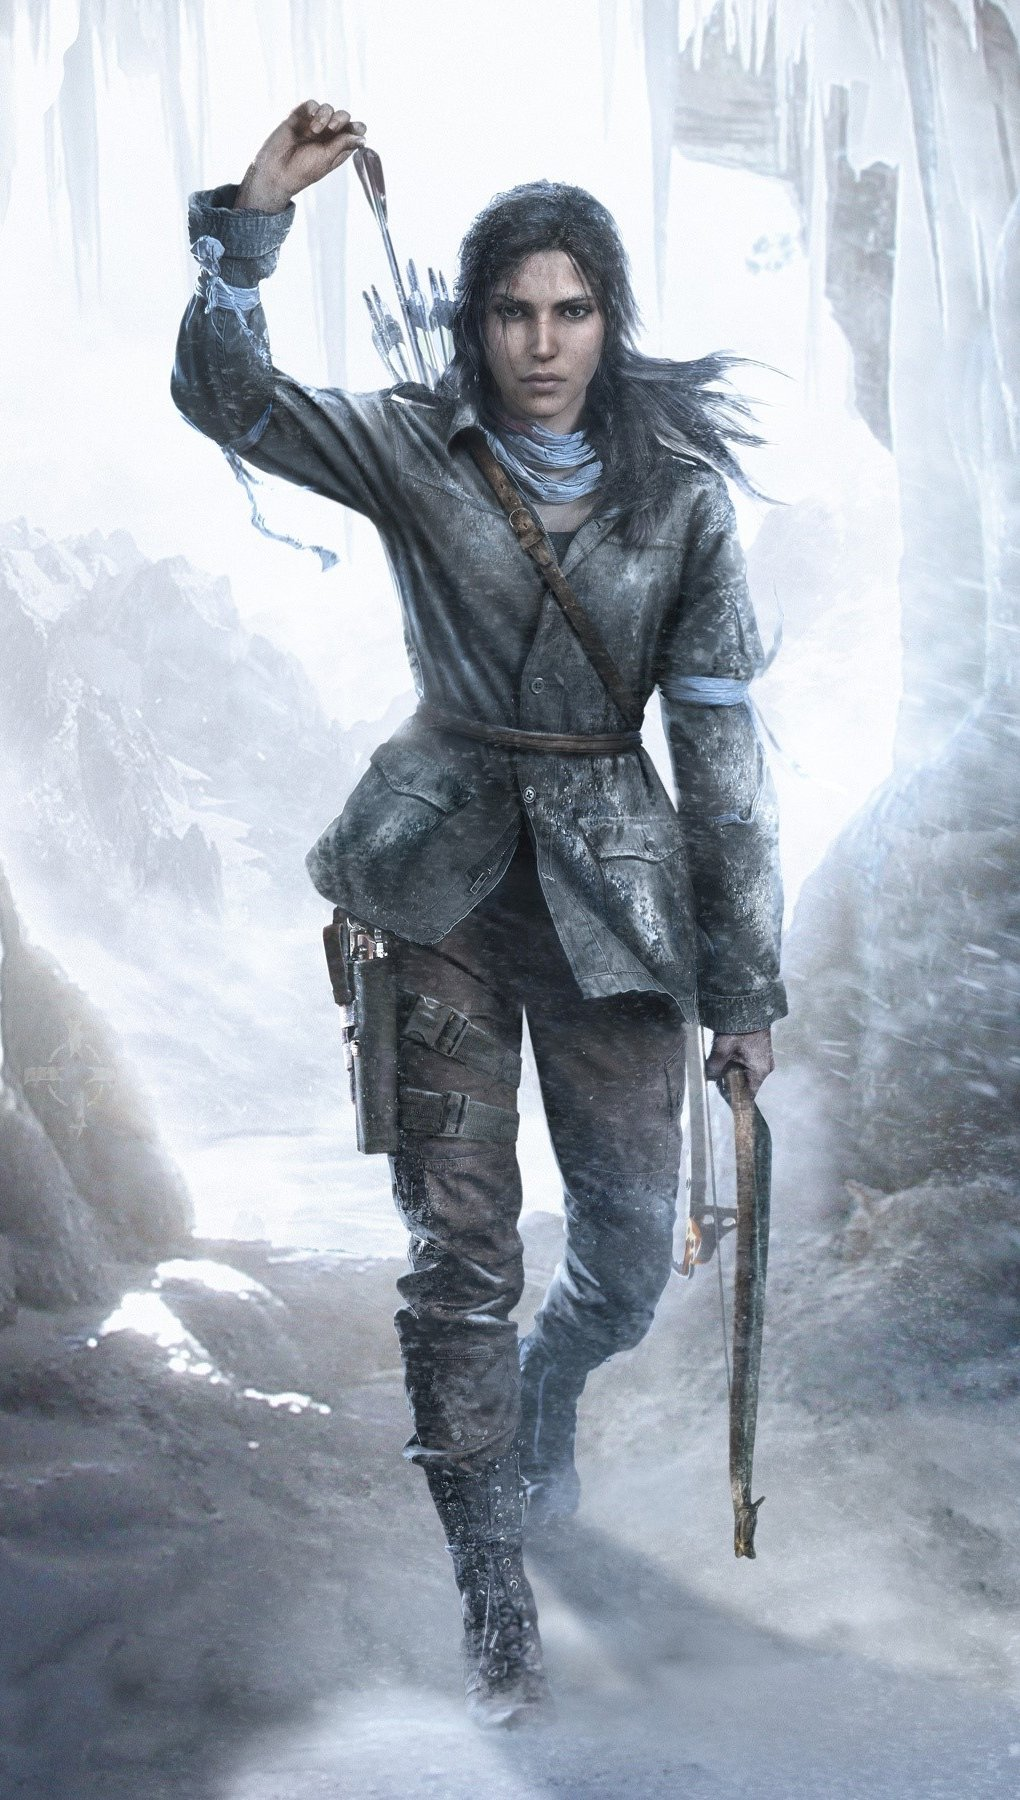 Wallpaper Game Rise of the Tomb Raider Vertical